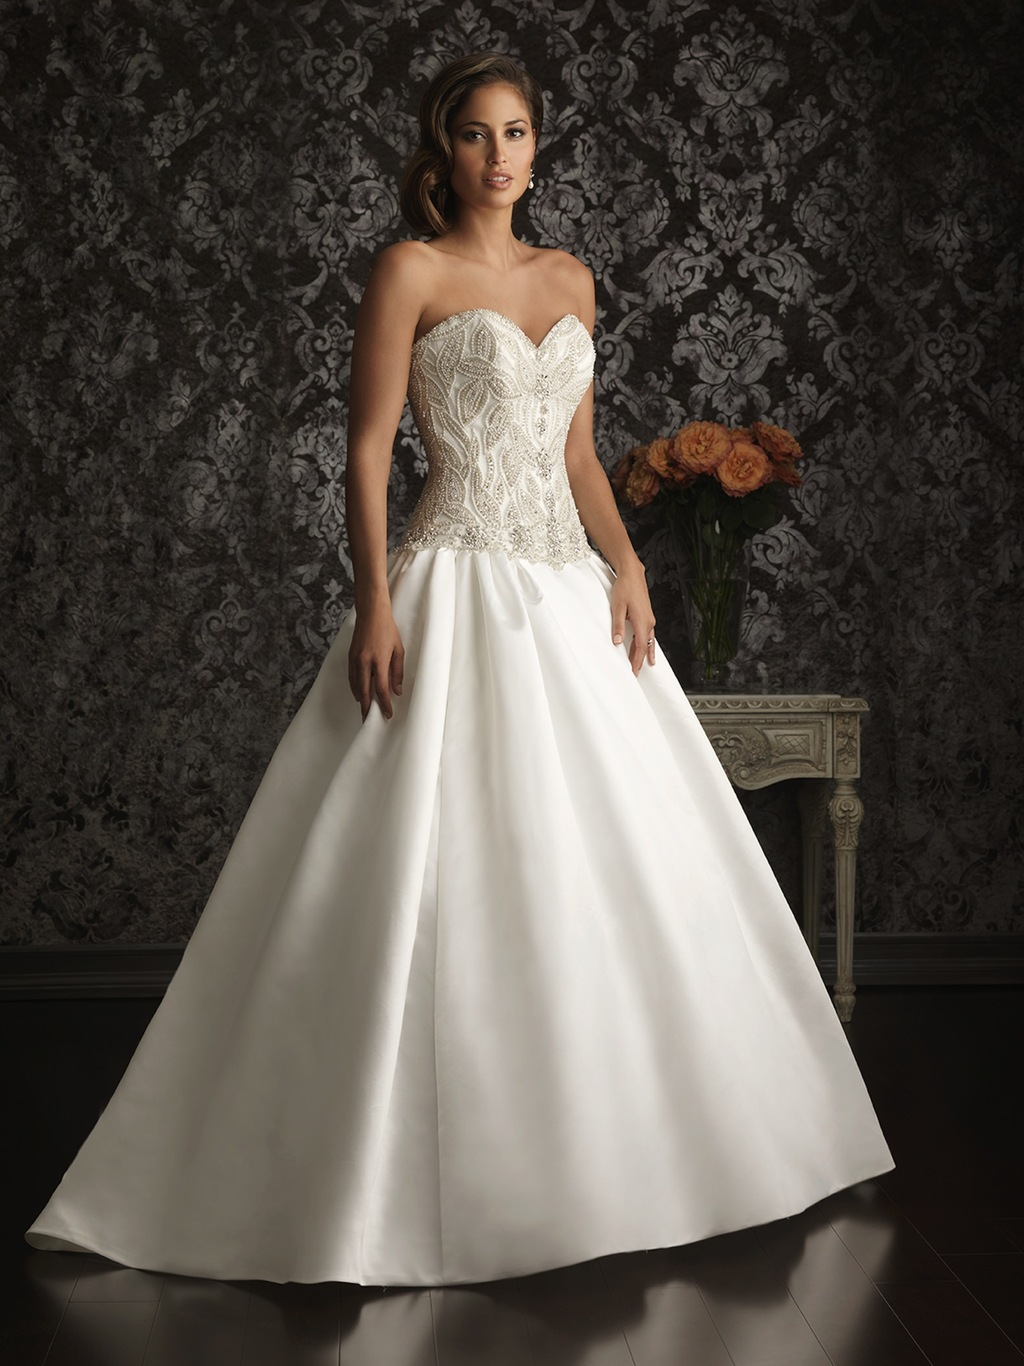 Allure-bridals-wedding-dress-bridal-gown-allure-collection-2013-9009f.full